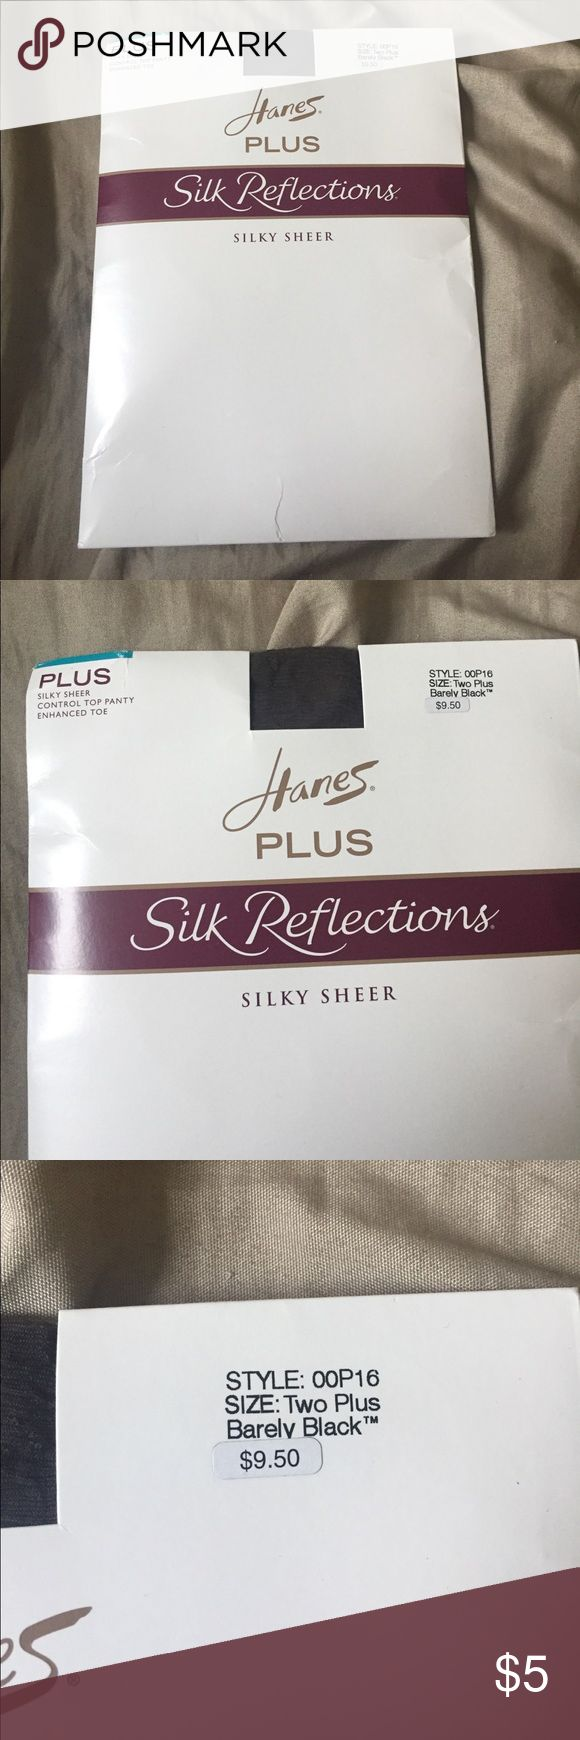 Hanes Plus Silk Reflection Silky Sheer Pantyhose Pack of 1 plus size black silky sheer pantyhose from Hanes. Never been worn or opened before. Please feel free to leave any questions or comments down below! Thanks! Hanes Accessories Hosiery & Socks